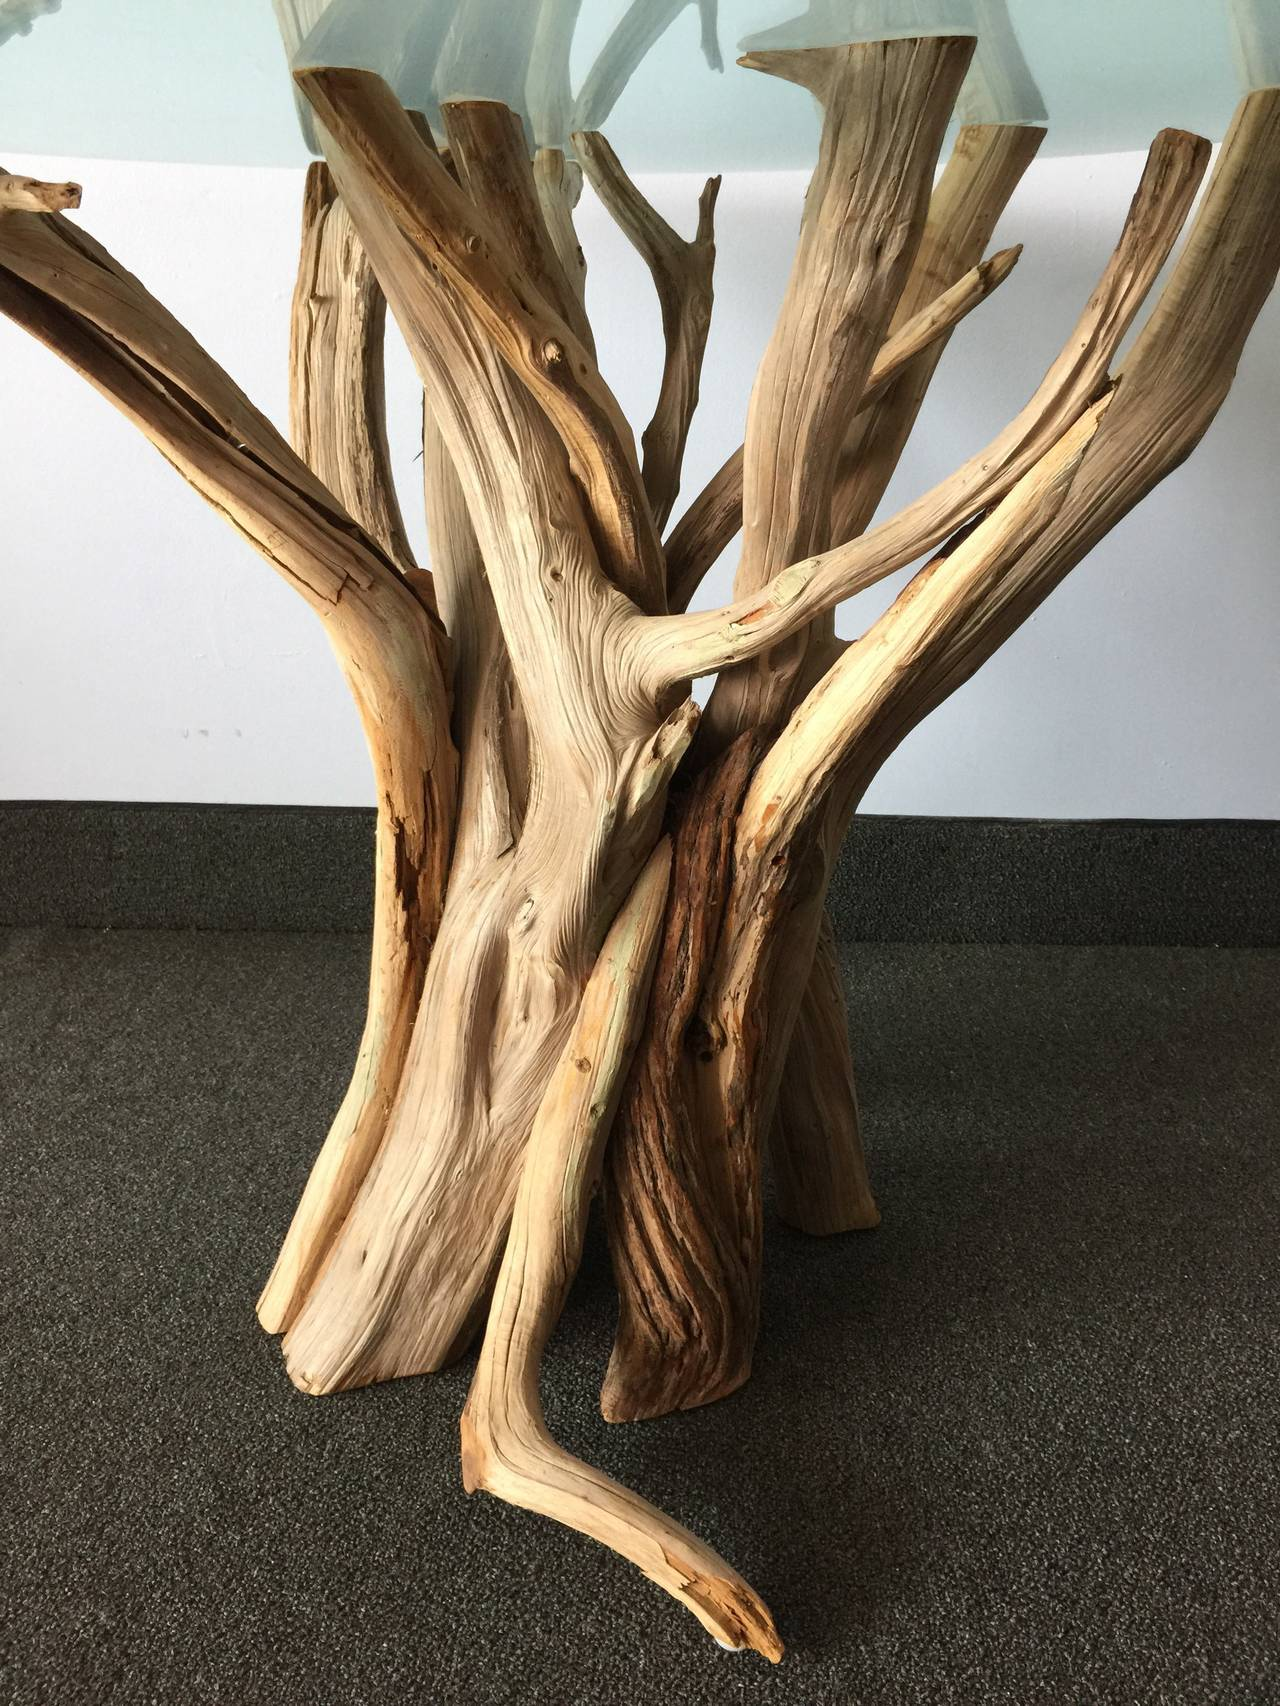 Natural and Organic Driftwood Occasional Table For Sale at